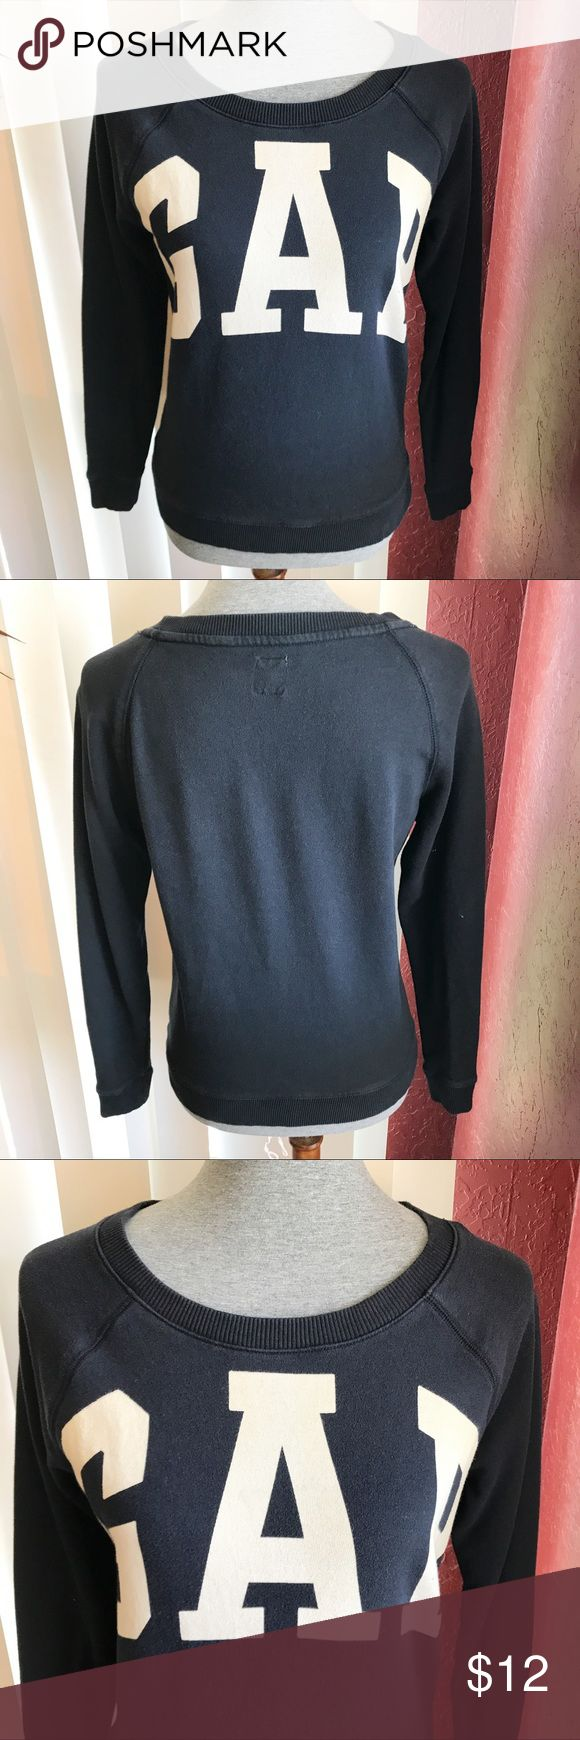 GAP Sweater Used. Good condition. Has two stains on the sleeve. Please see pictures above. Navy blue. GAP Sweaters